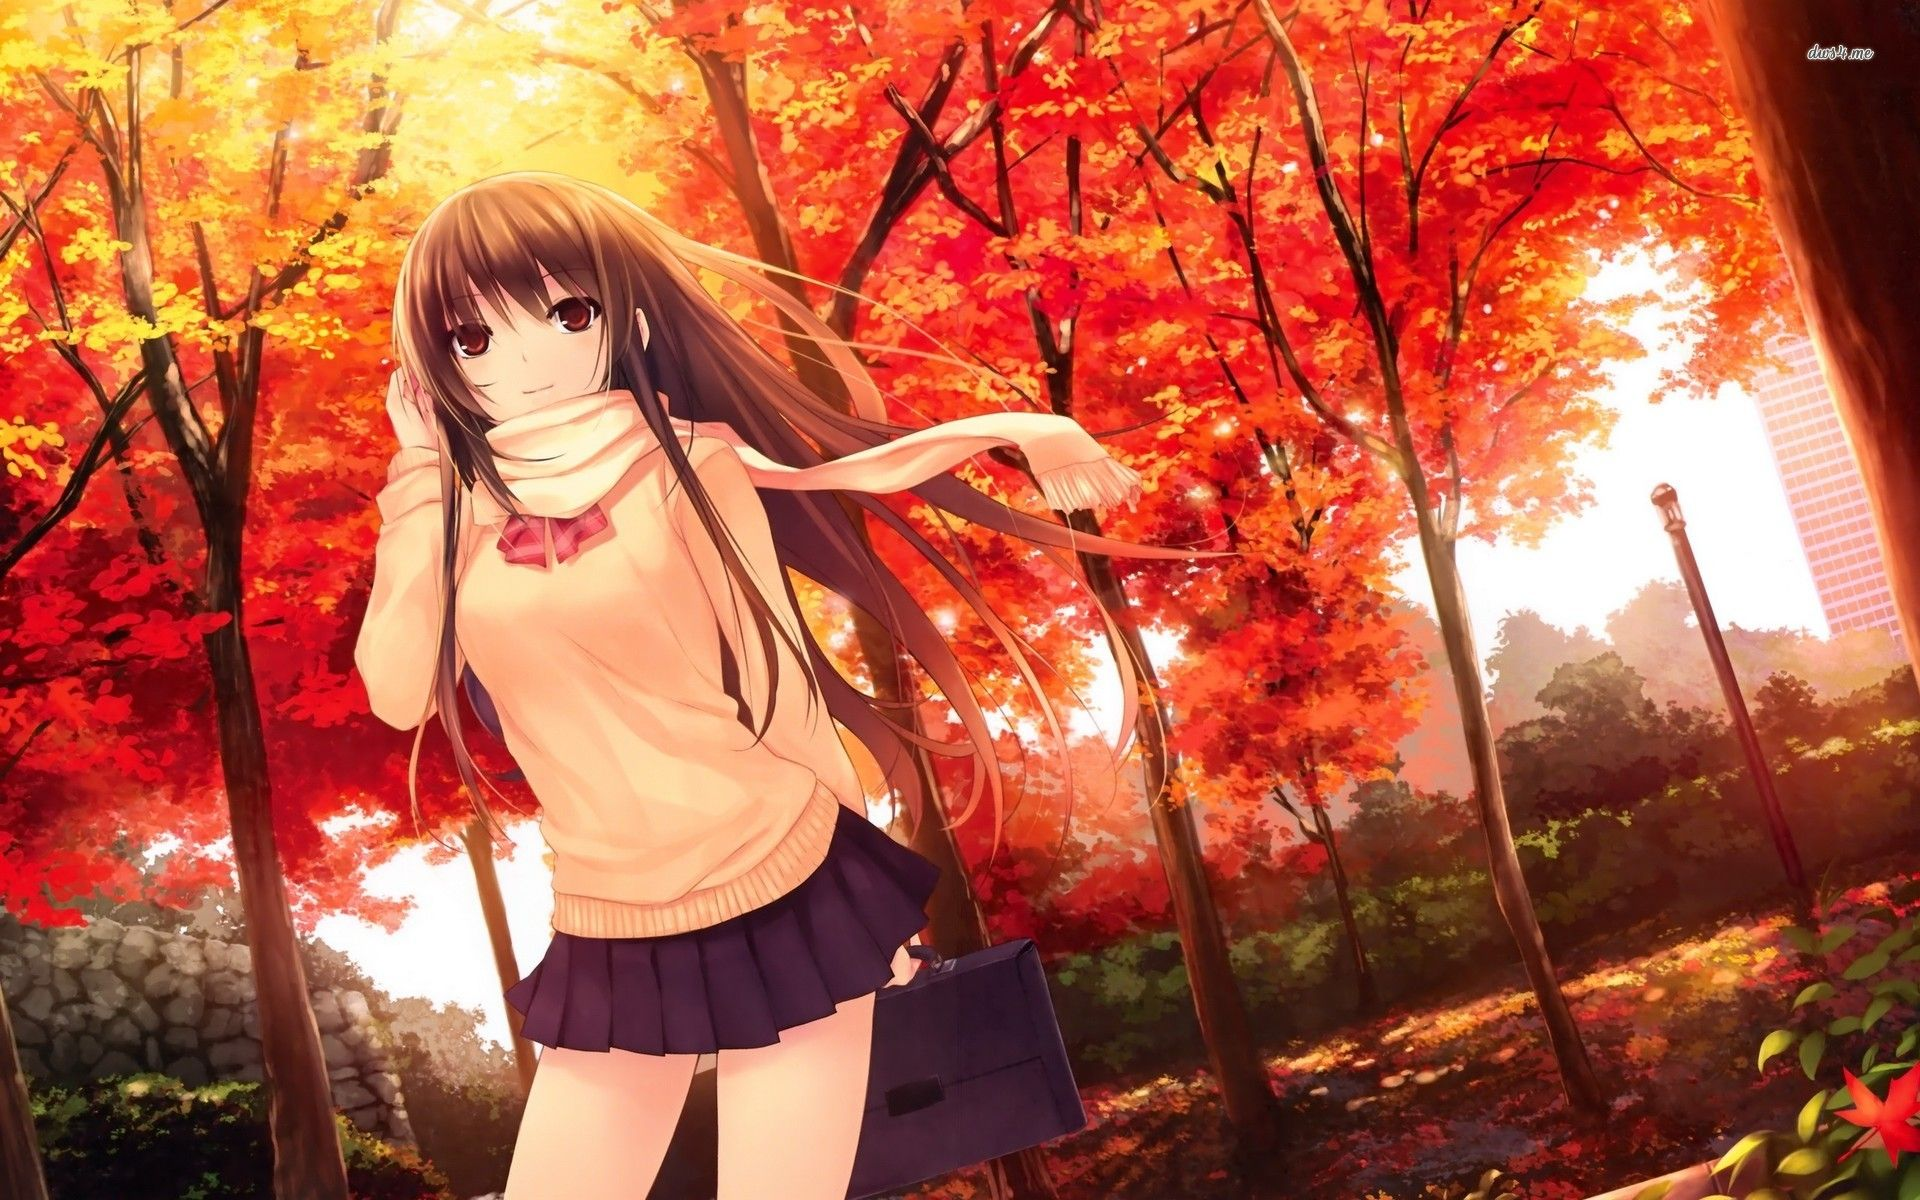 Fall In Love Girl Wallpaper : 14665-girl-in-the-autumn-park-1920x1200-anime-wallpaper.jpg (1920x1200) Slice of Life ...